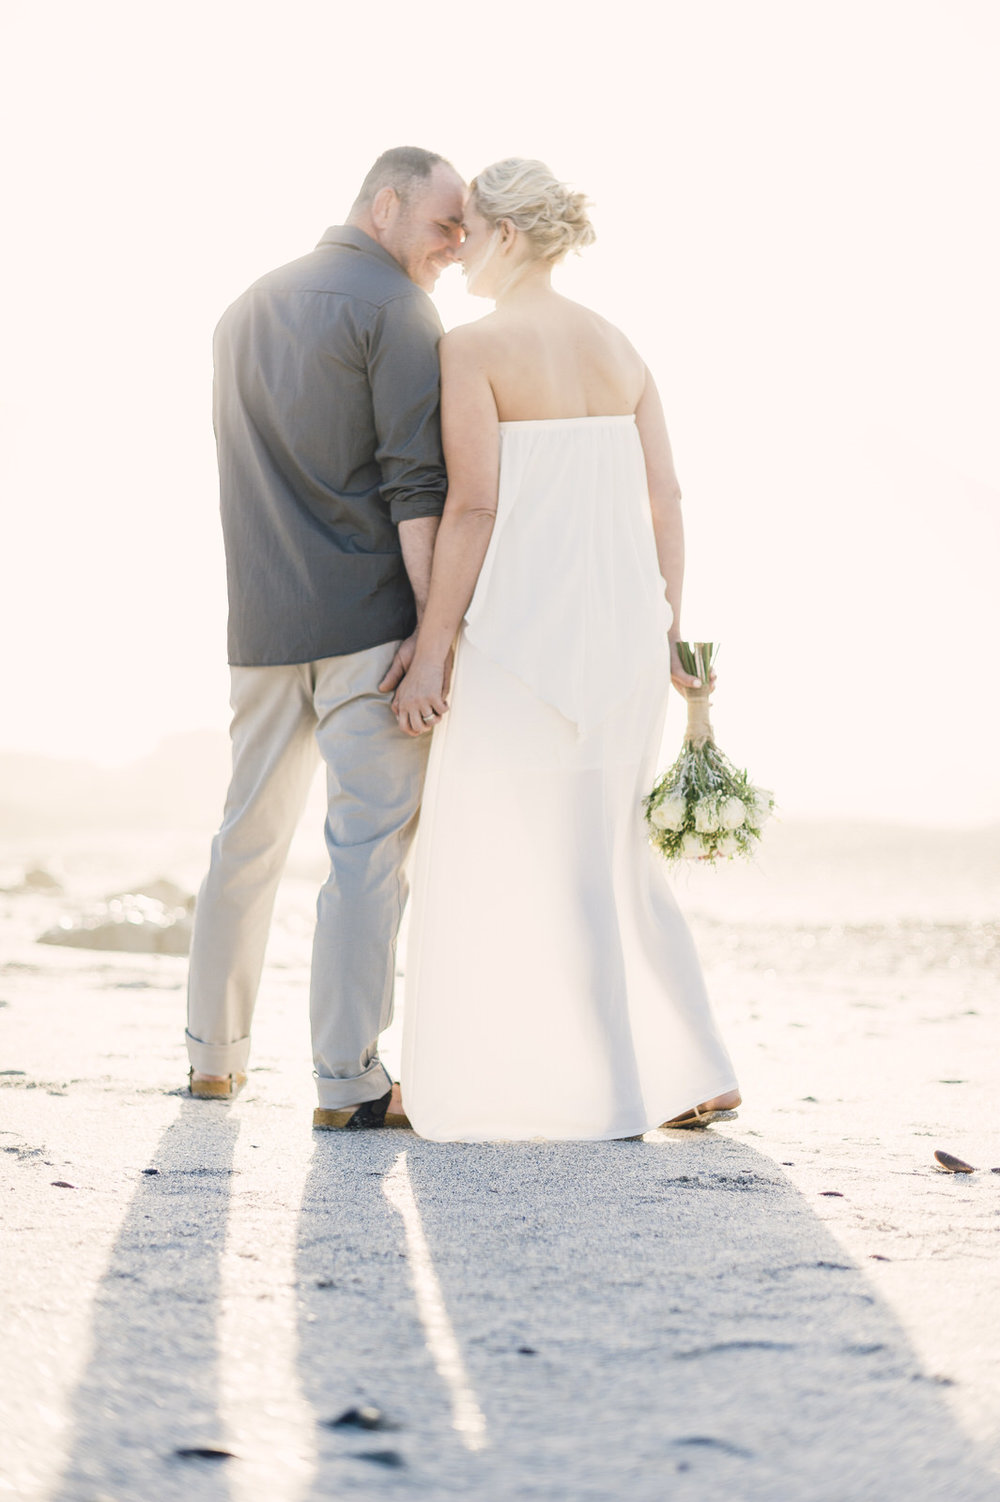 RyanParker_CapeTown_Photographer_Wedding_Hermanus_A&B_DSC_9474.jpg